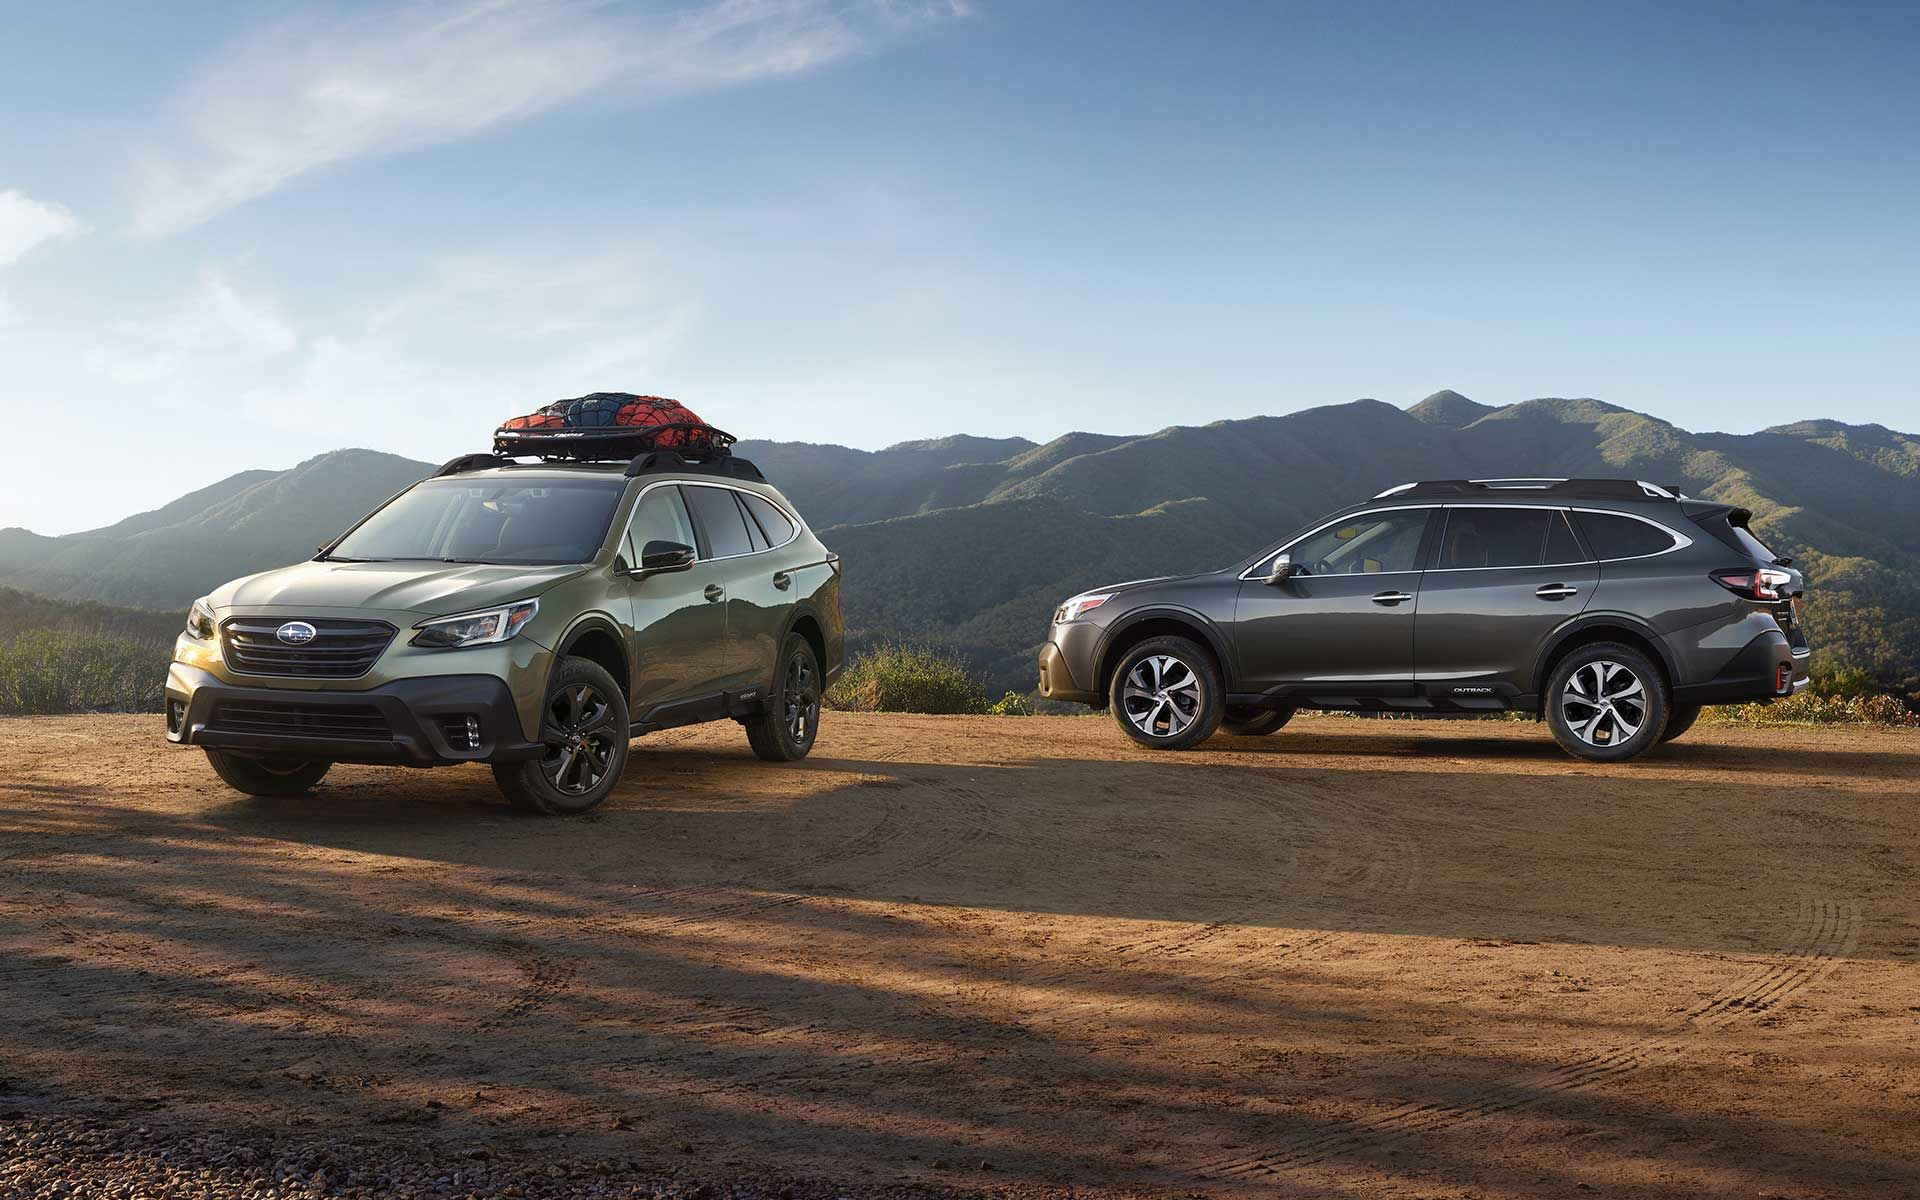 Introducing The All New Most Adventurous Most Reliable Safest Best Subaru Outback Ever Subaru Outback Subaru Outback